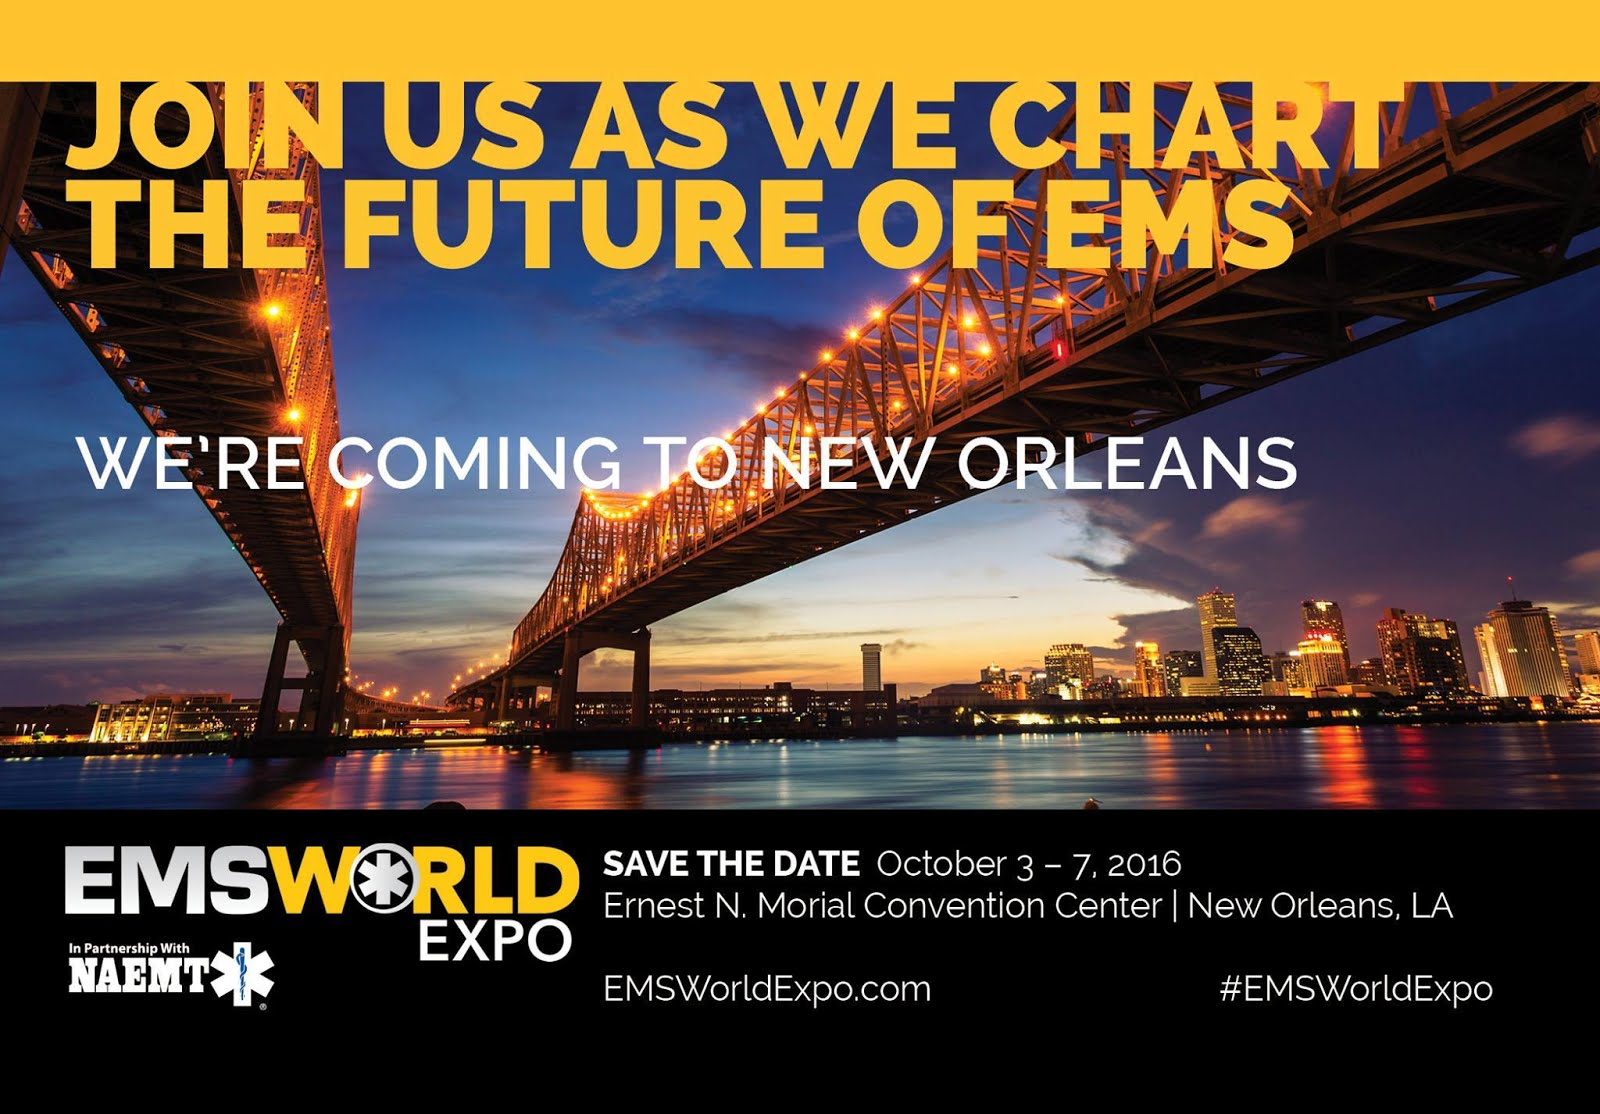 EMS WORLD EXPO 2016. New Orleans, Lousiana. USA October 3-7